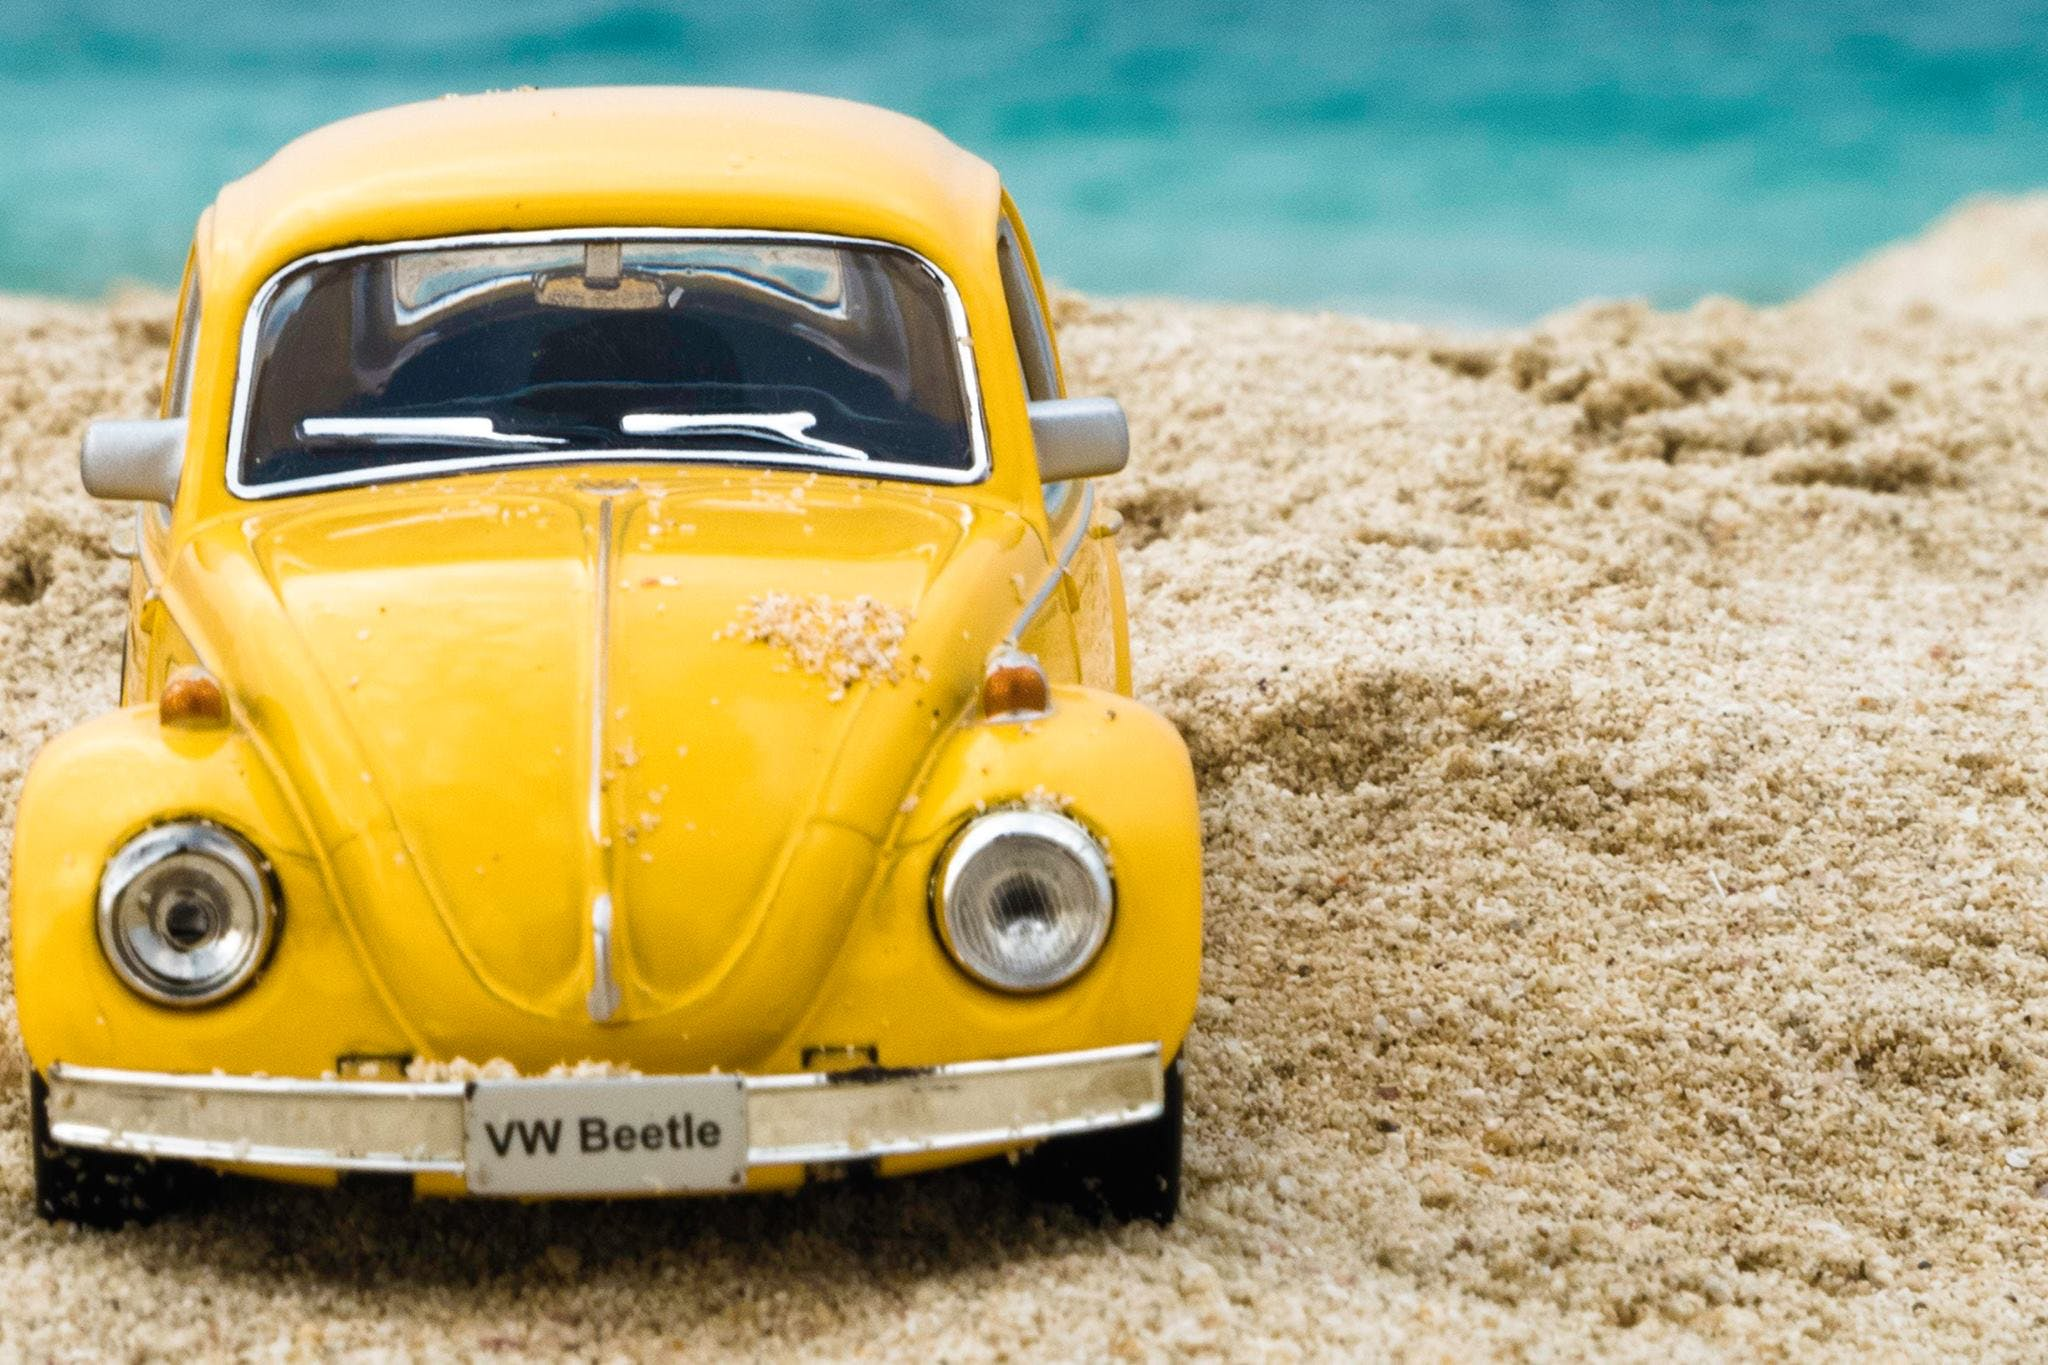 of baby toy, beetle, kids toy, miniature